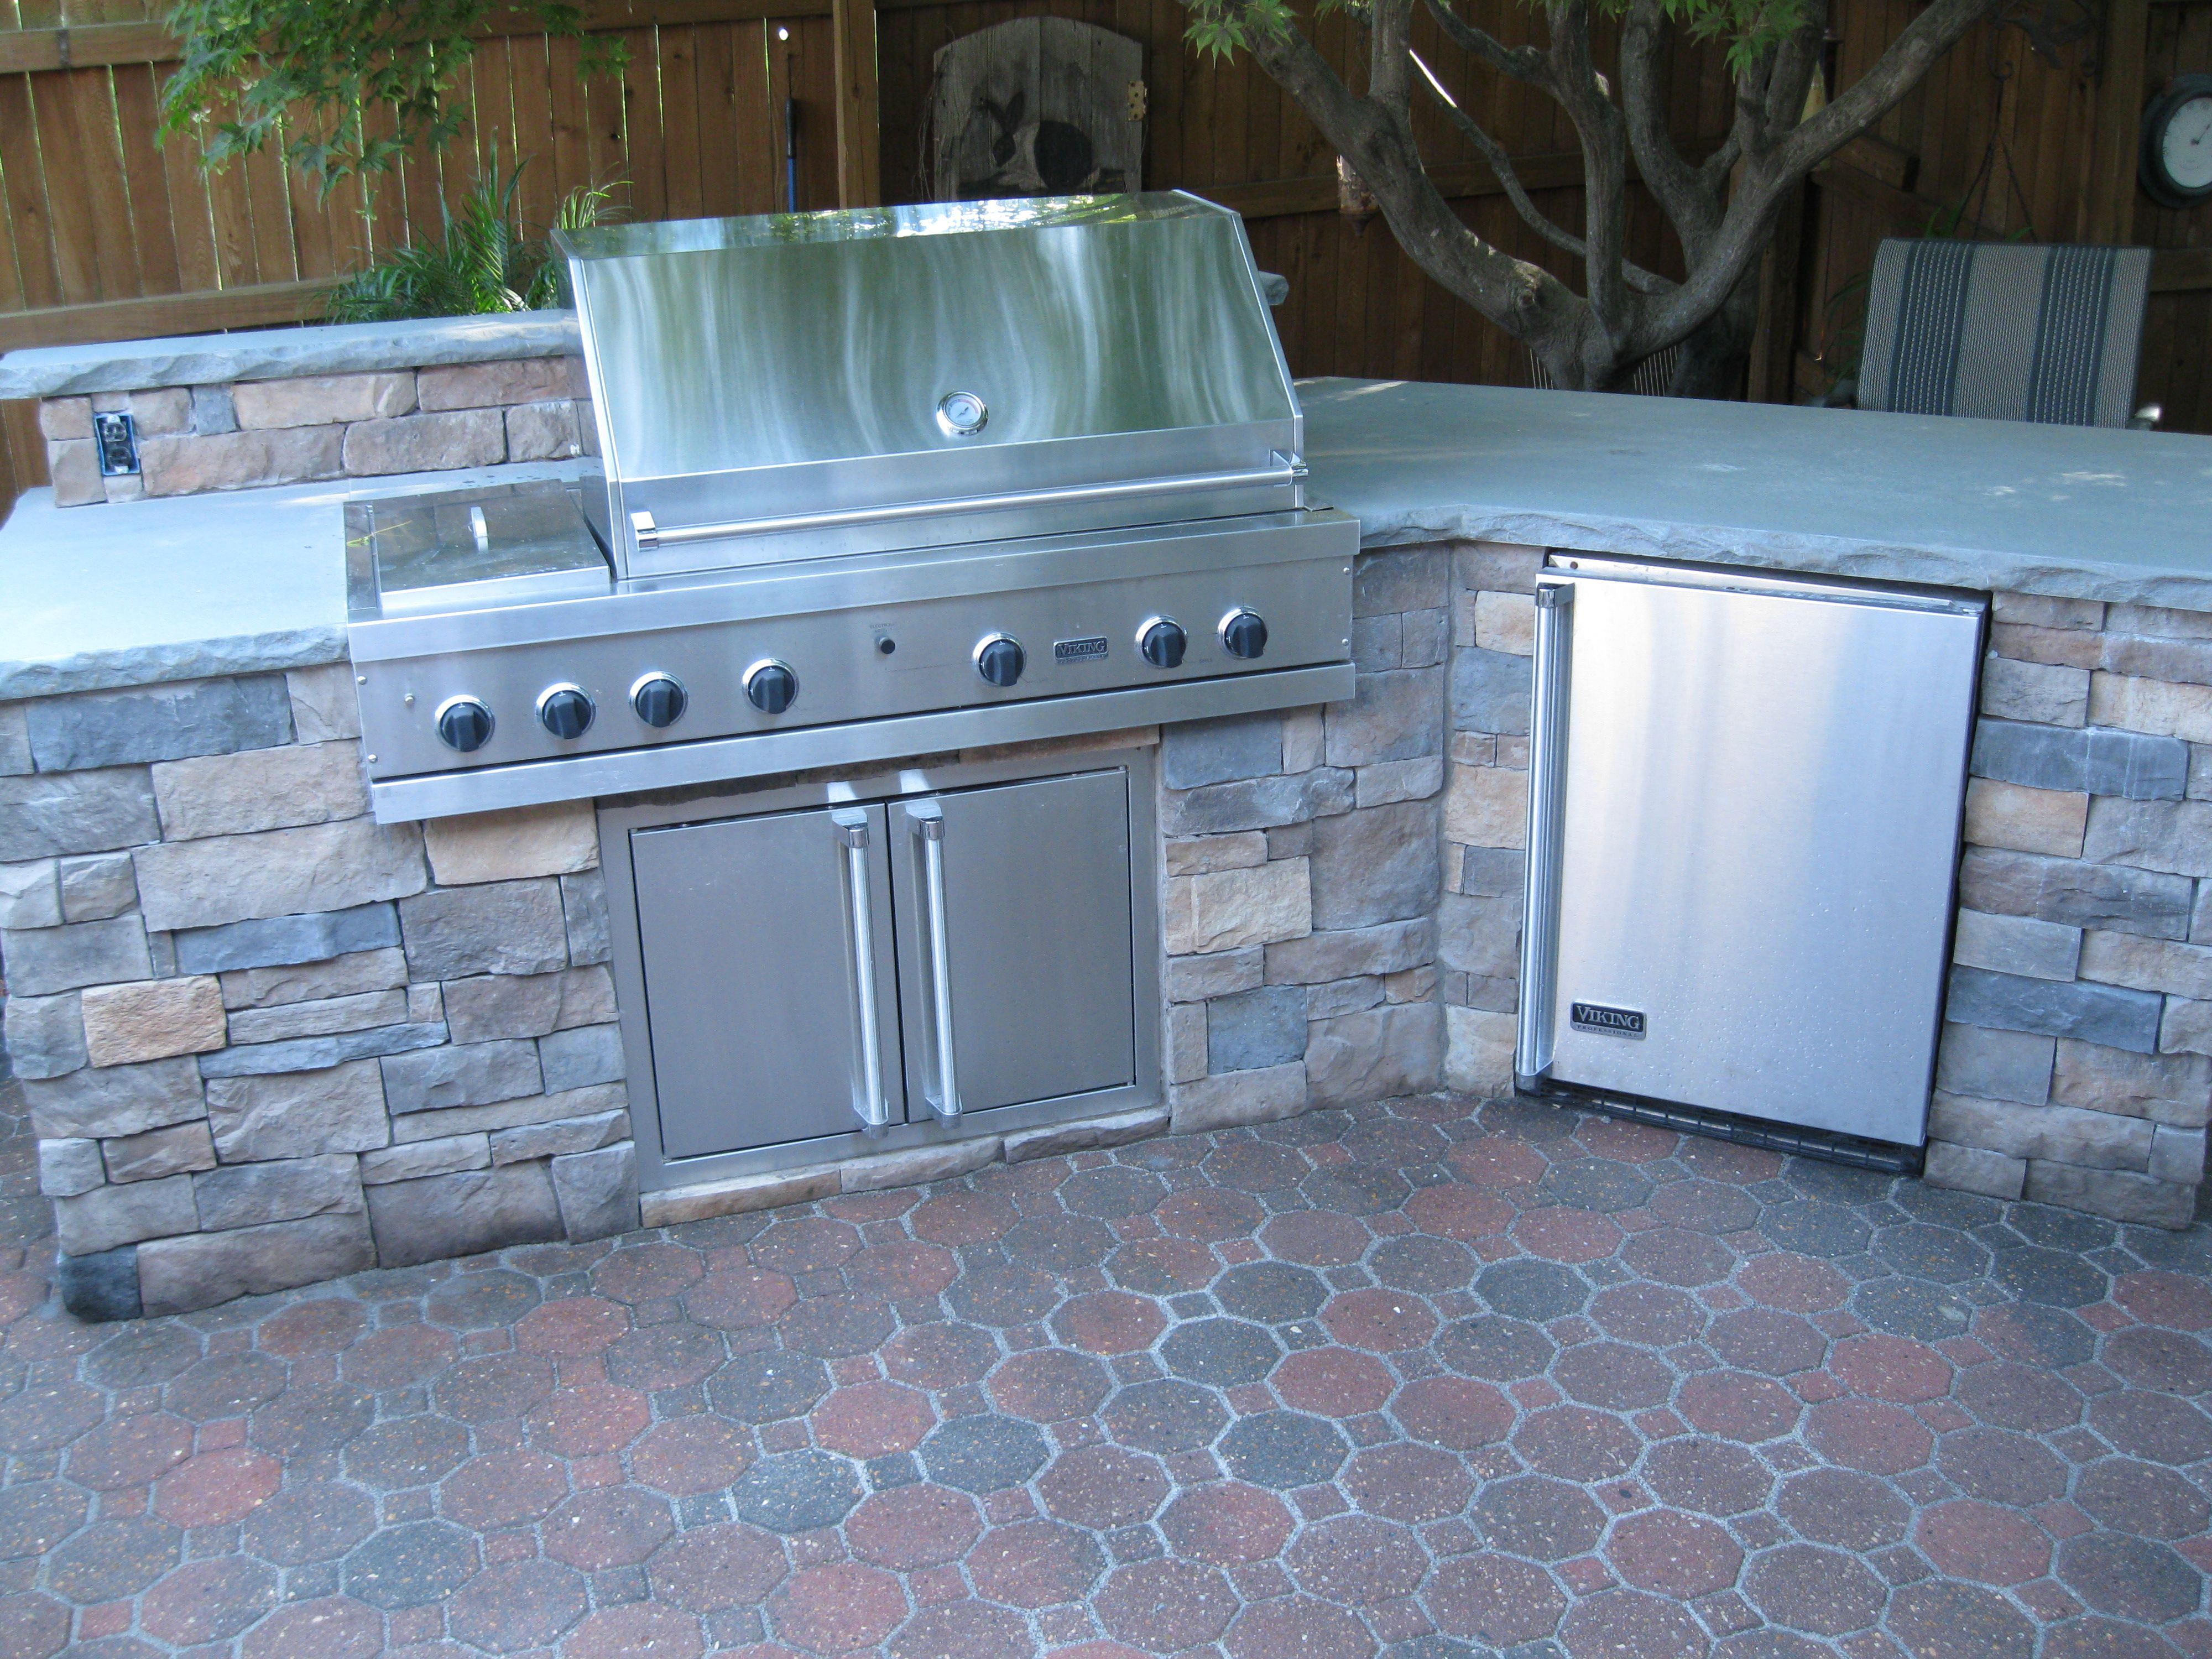 Awesome Bar, Grill, Fridge, And Concrete Countertops!! #patio #patiolife